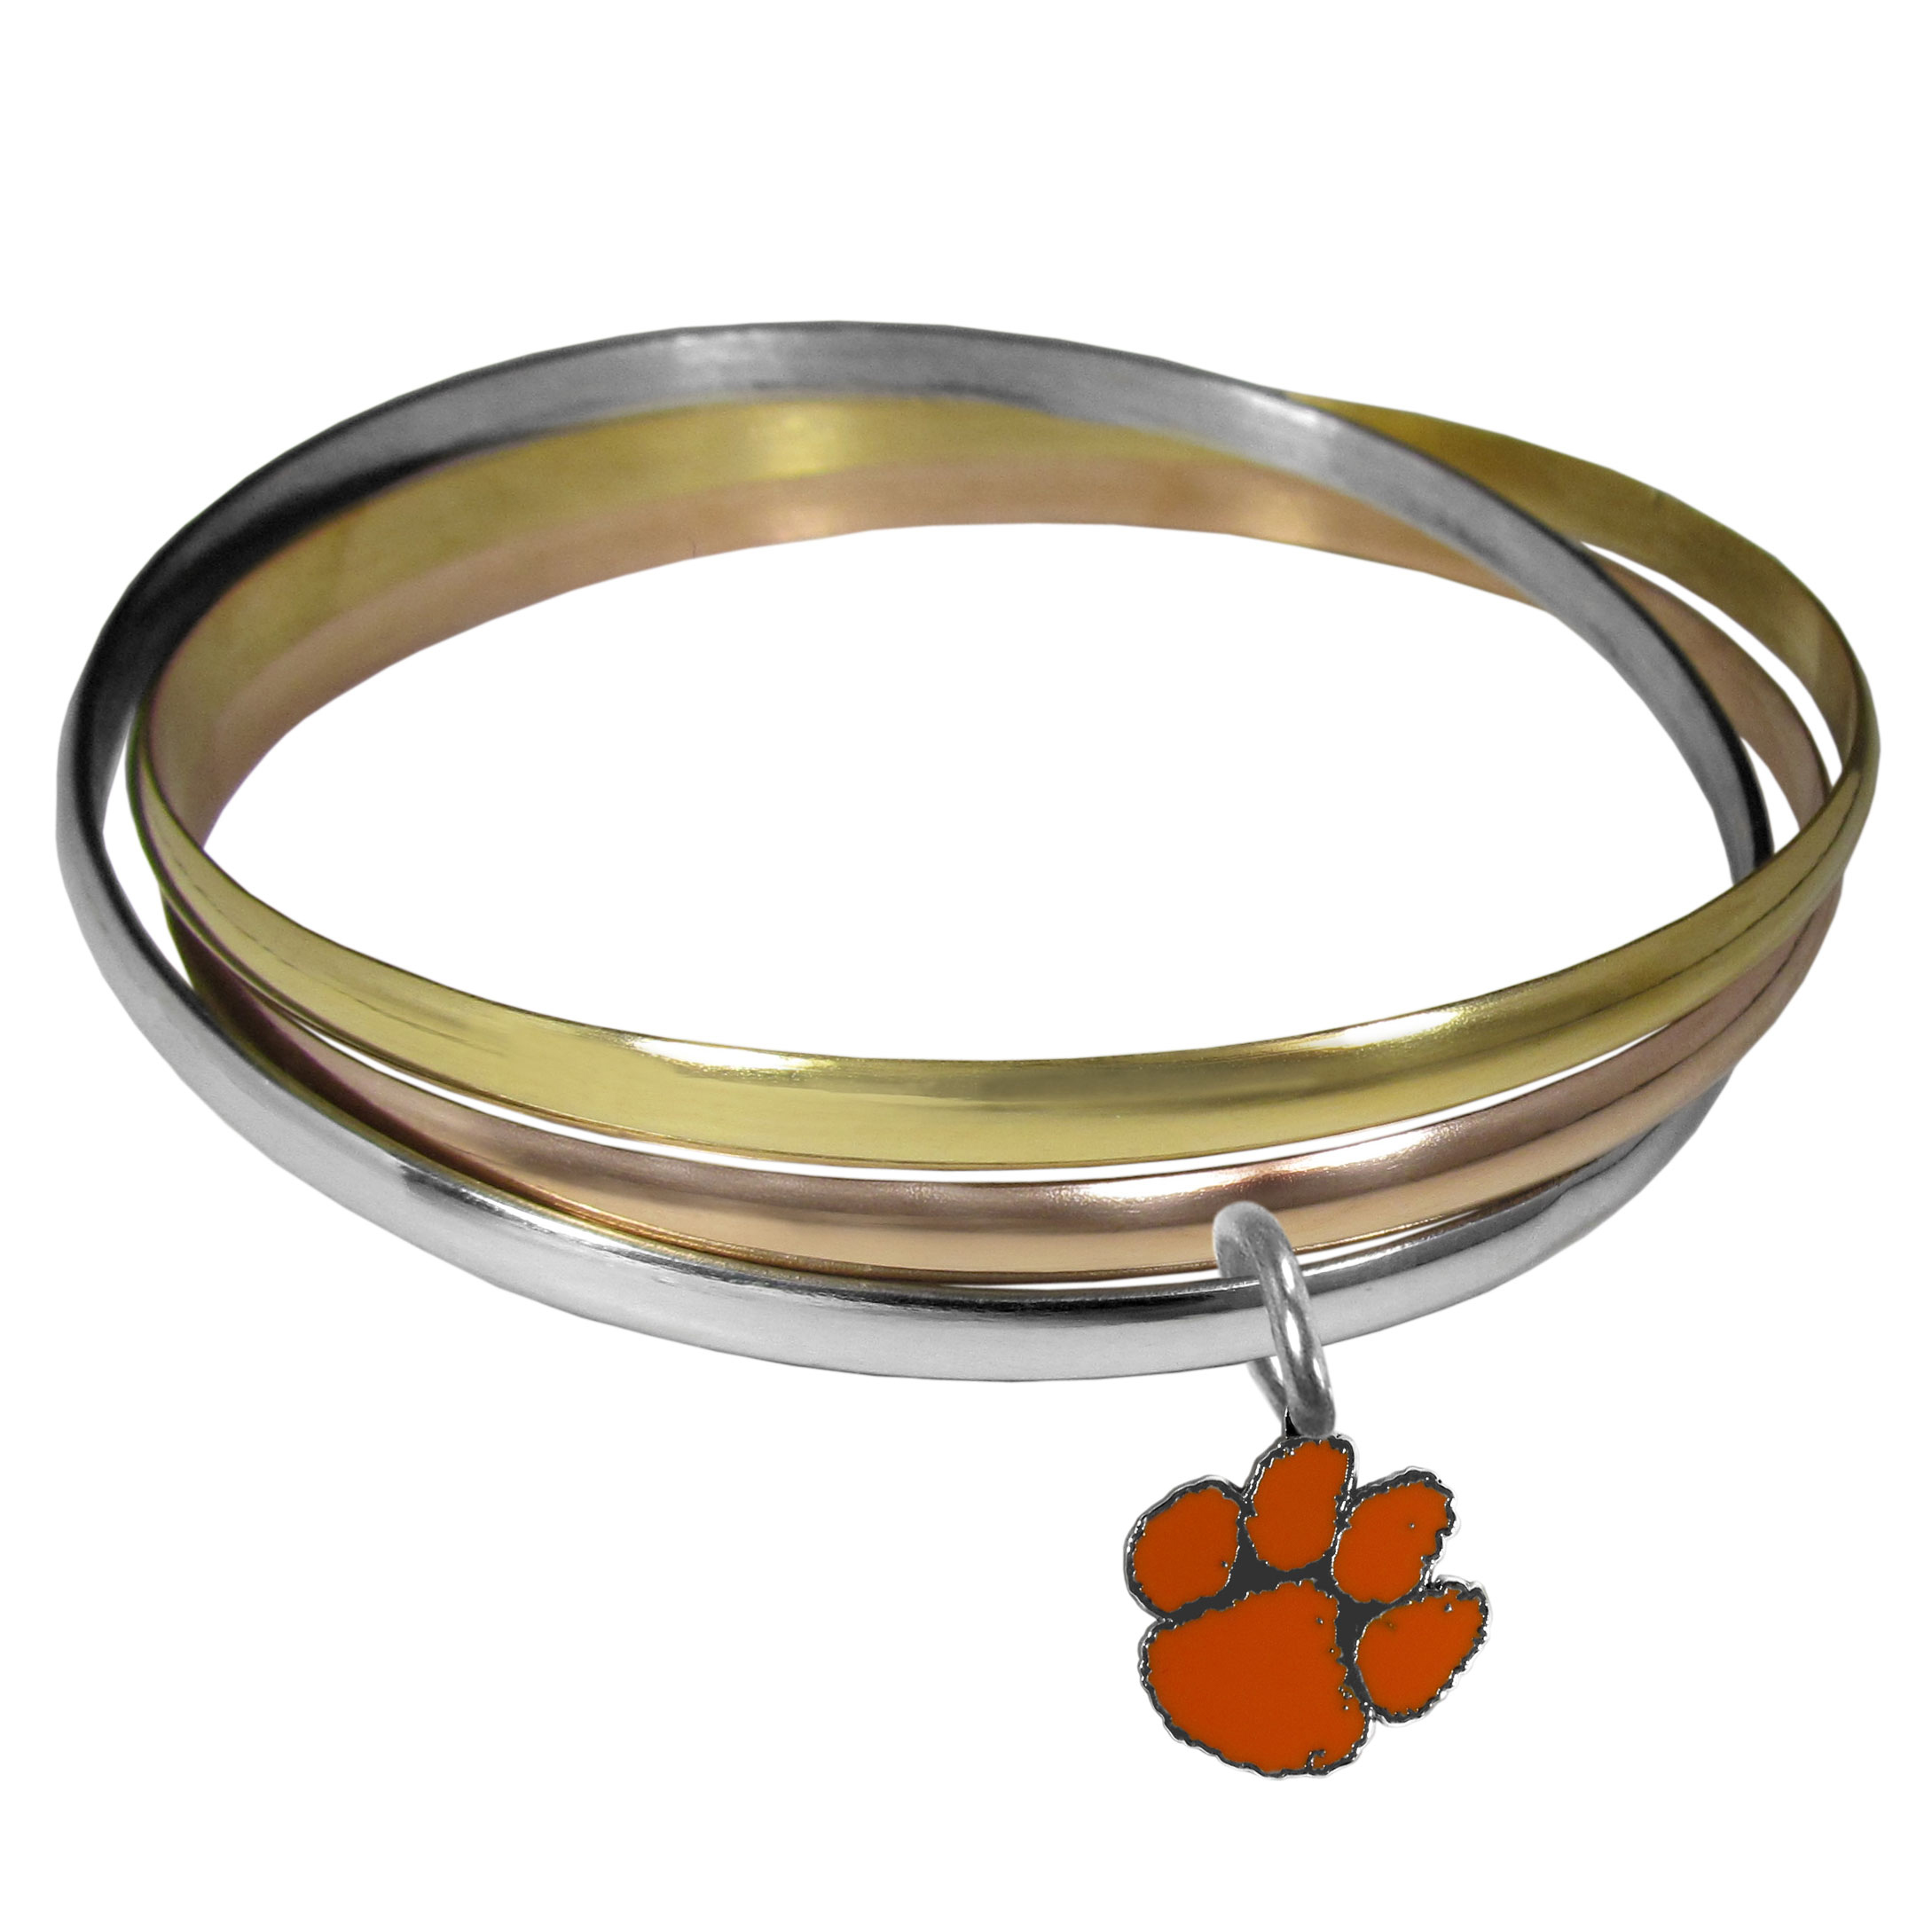 Clemson Tigers Tri-color Bangle Bracelet - These beautiful bangles come in a interlocking style and feature a fully cast Clemson Tigers charm with enameled team colors. The bracelet has a silver toned bangle, gold tone bangle and brass toned bangle.